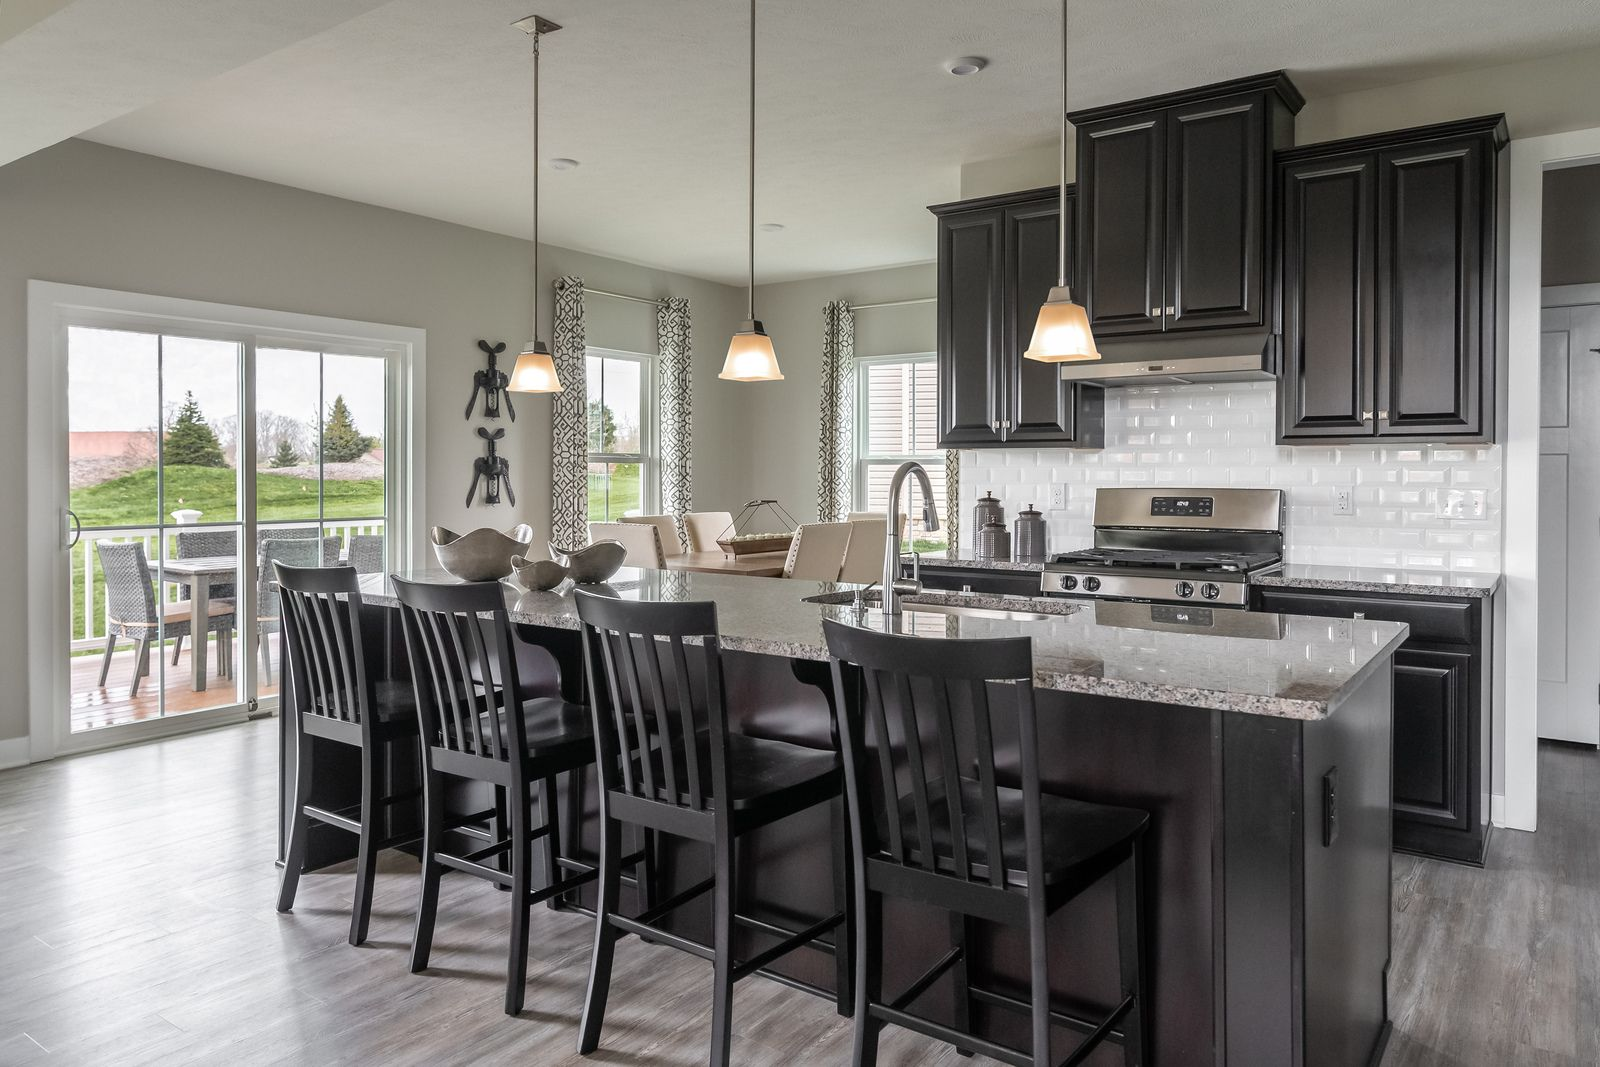 Kitchen featured in the Columbia w/ Finished Basement By Ryan Homes in Dayton-Springfield, OH